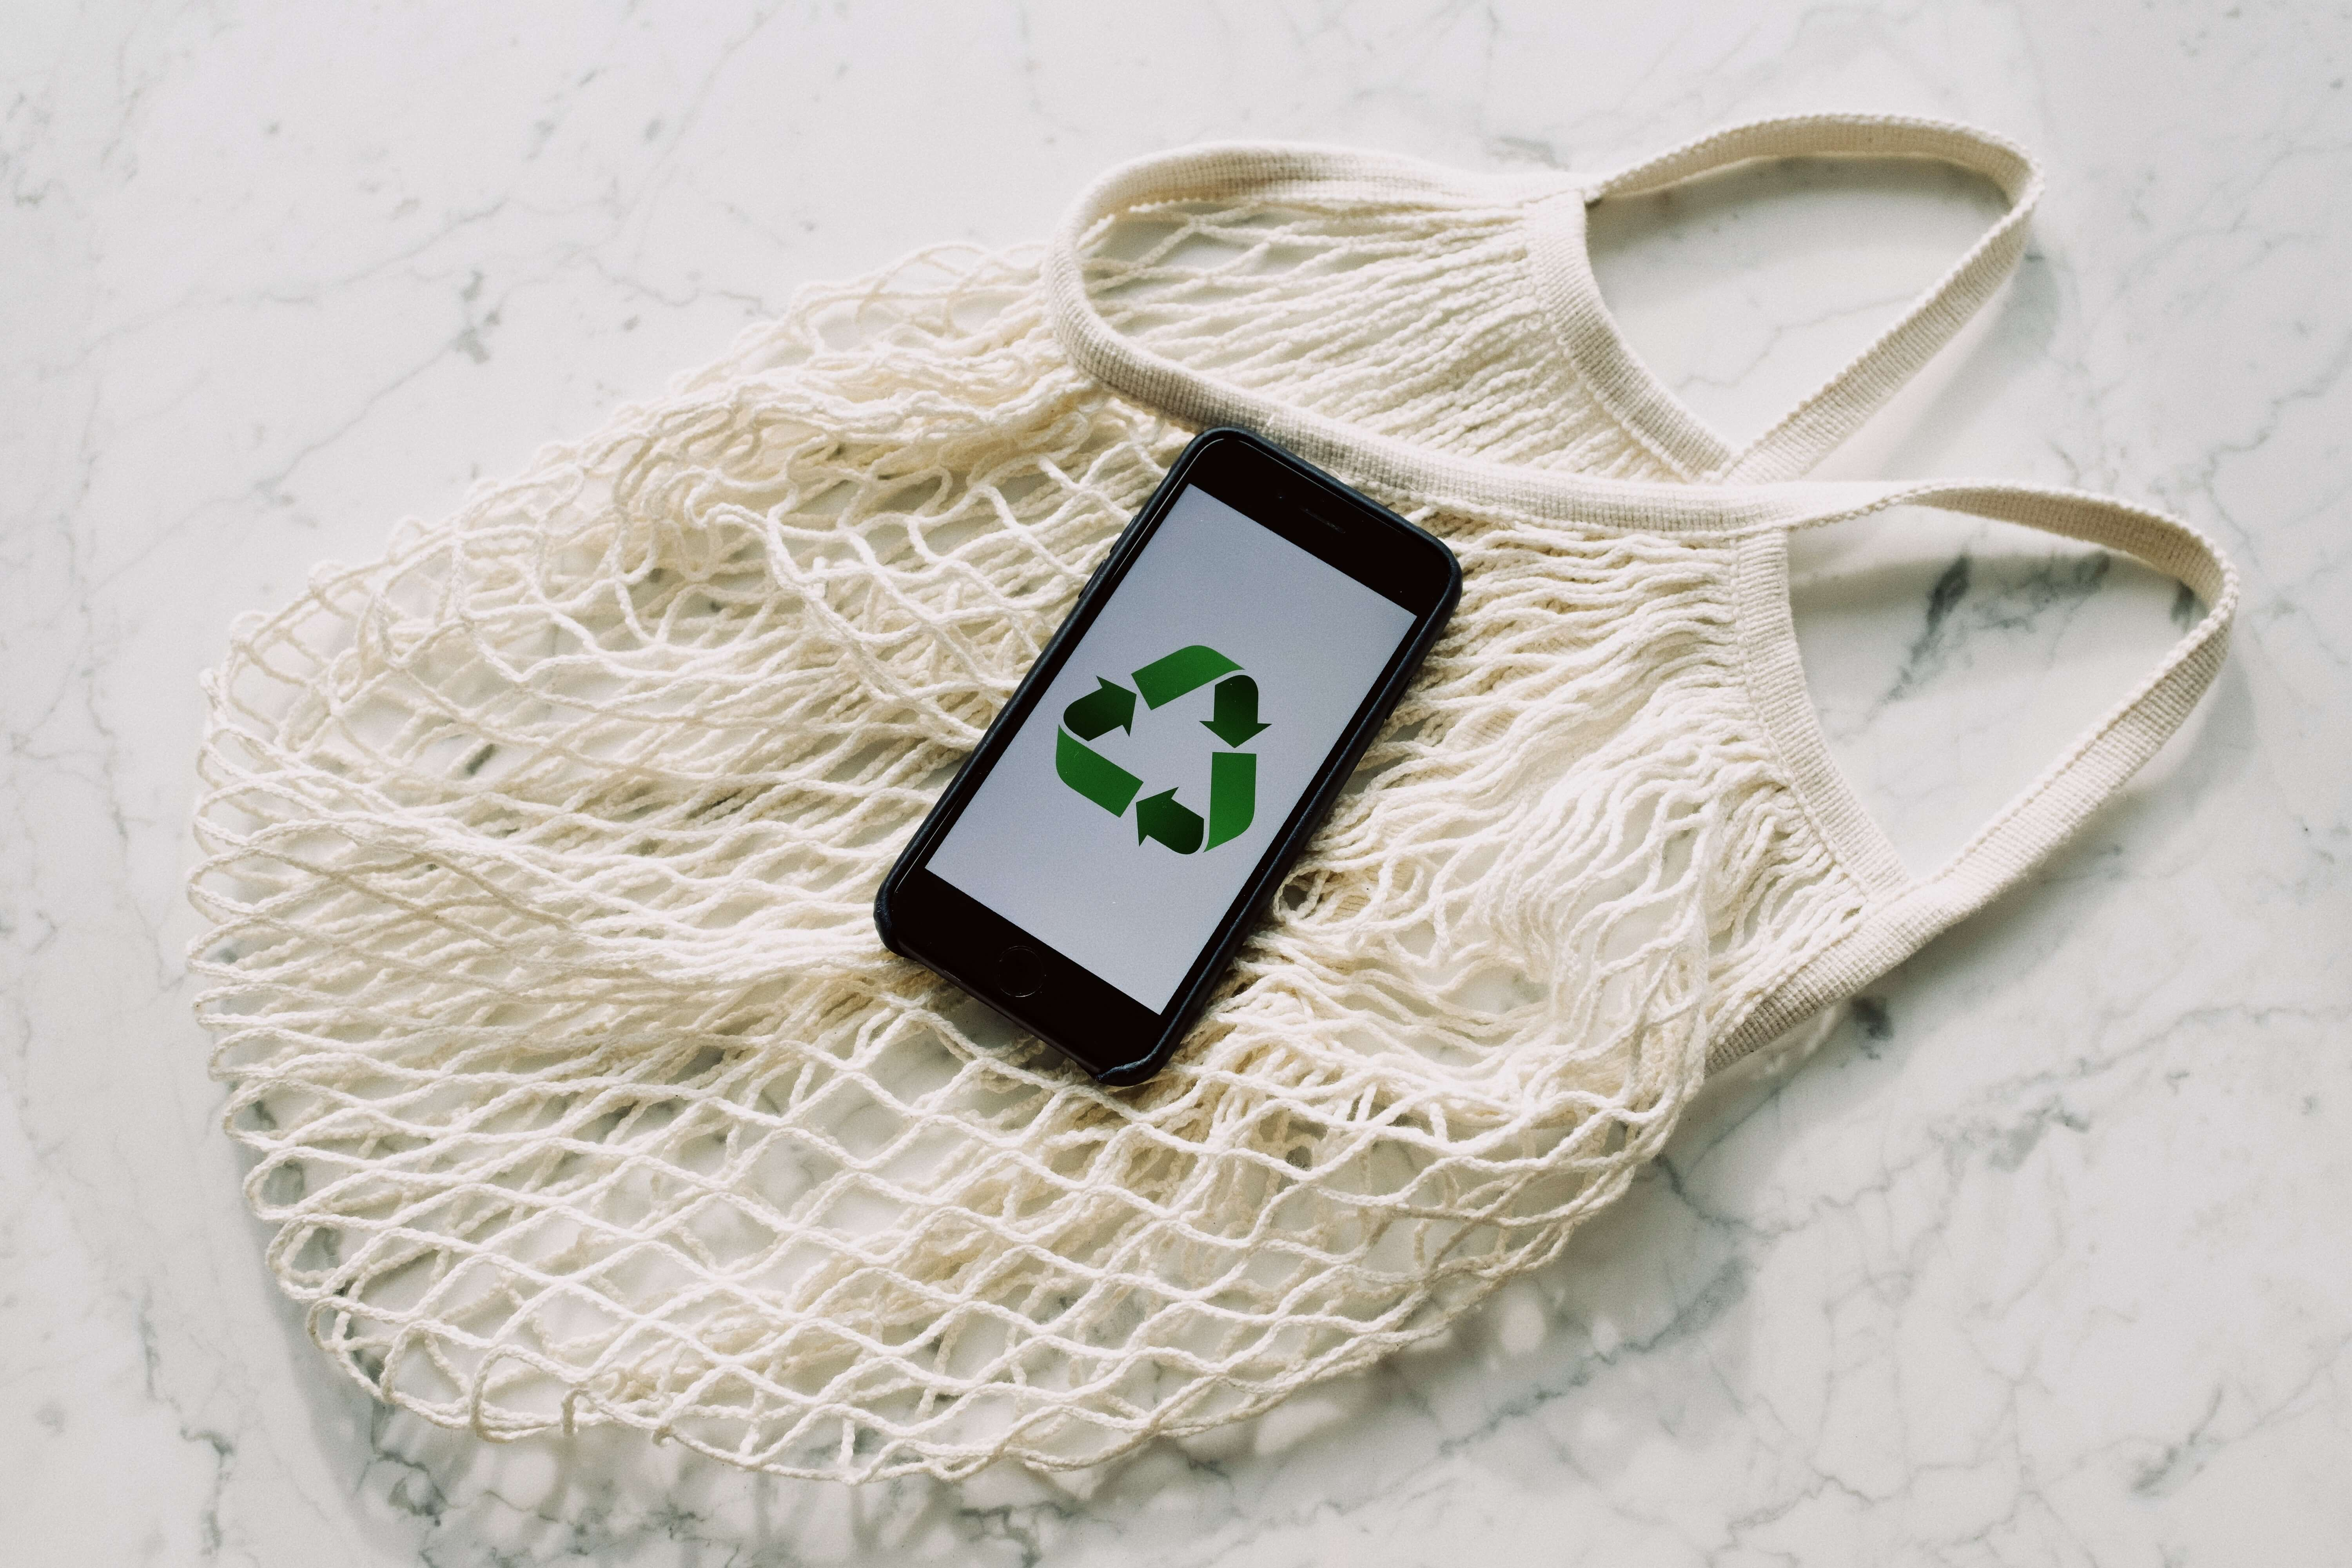 A sustainable mesh shopping bag with a phone on top of it that's displaying the recycle icon.